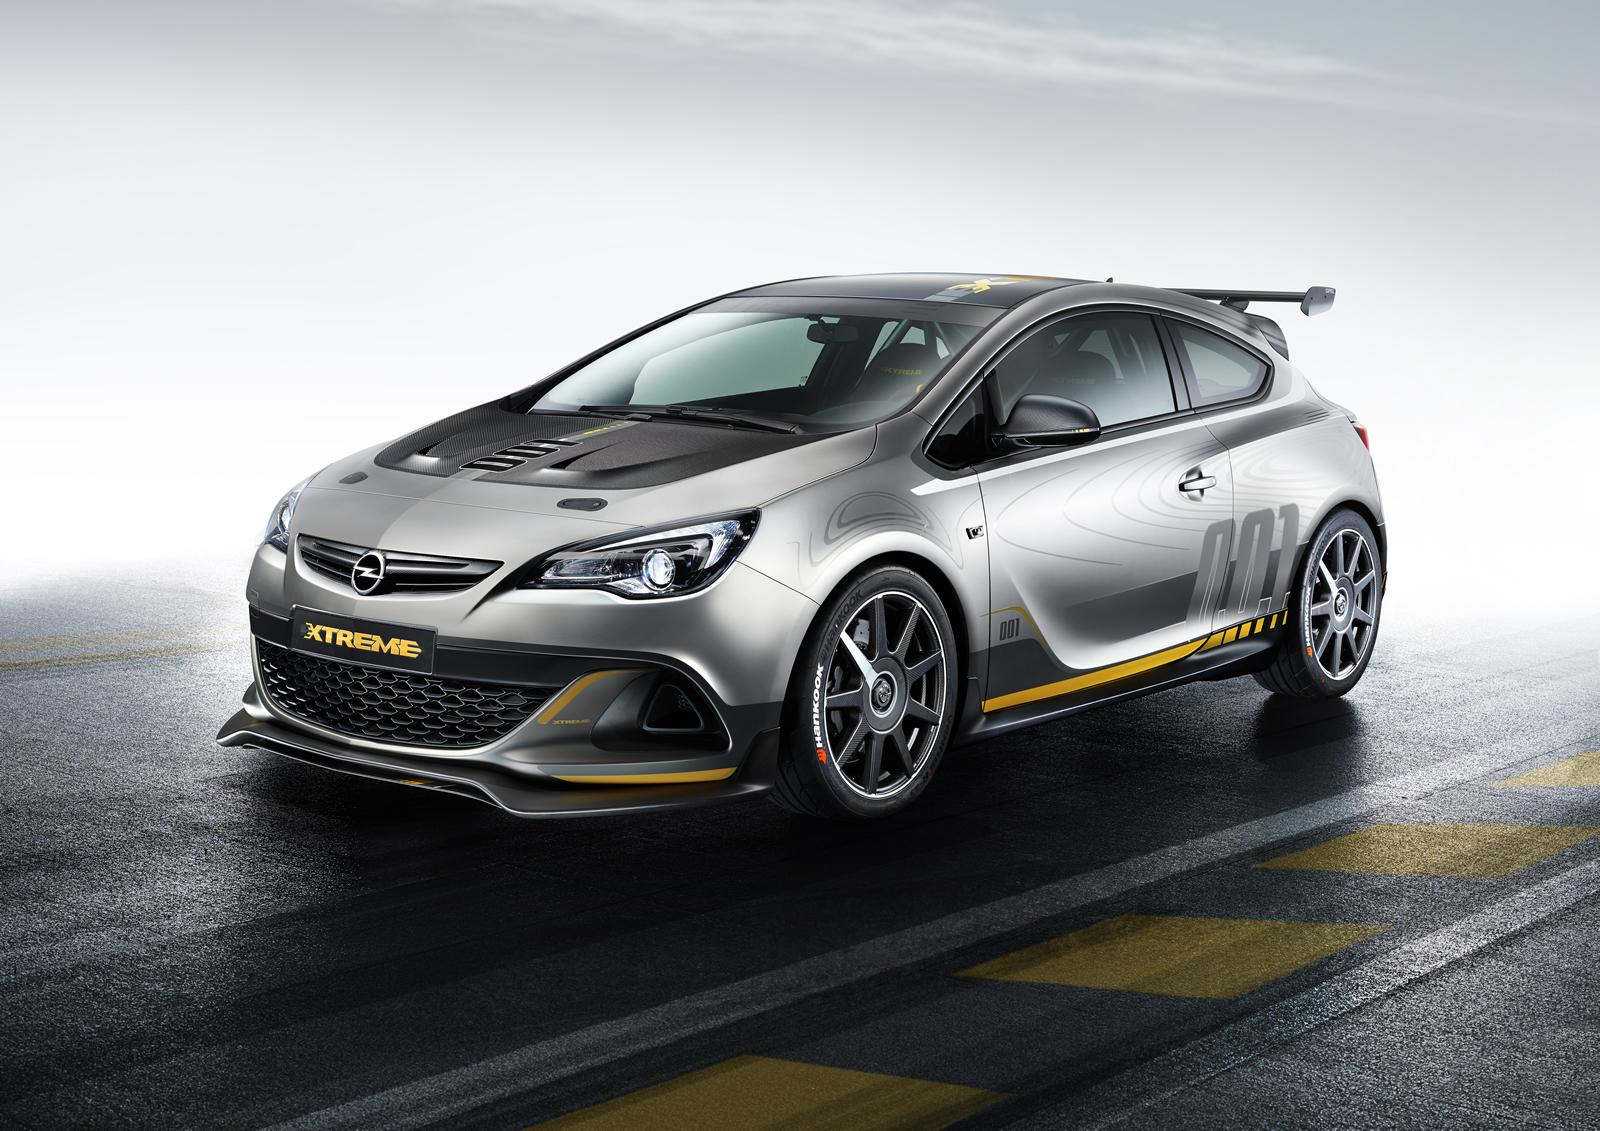 opel astra opc extreme 300 hp hot hatch with carbon. Black Bedroom Furniture Sets. Home Design Ideas